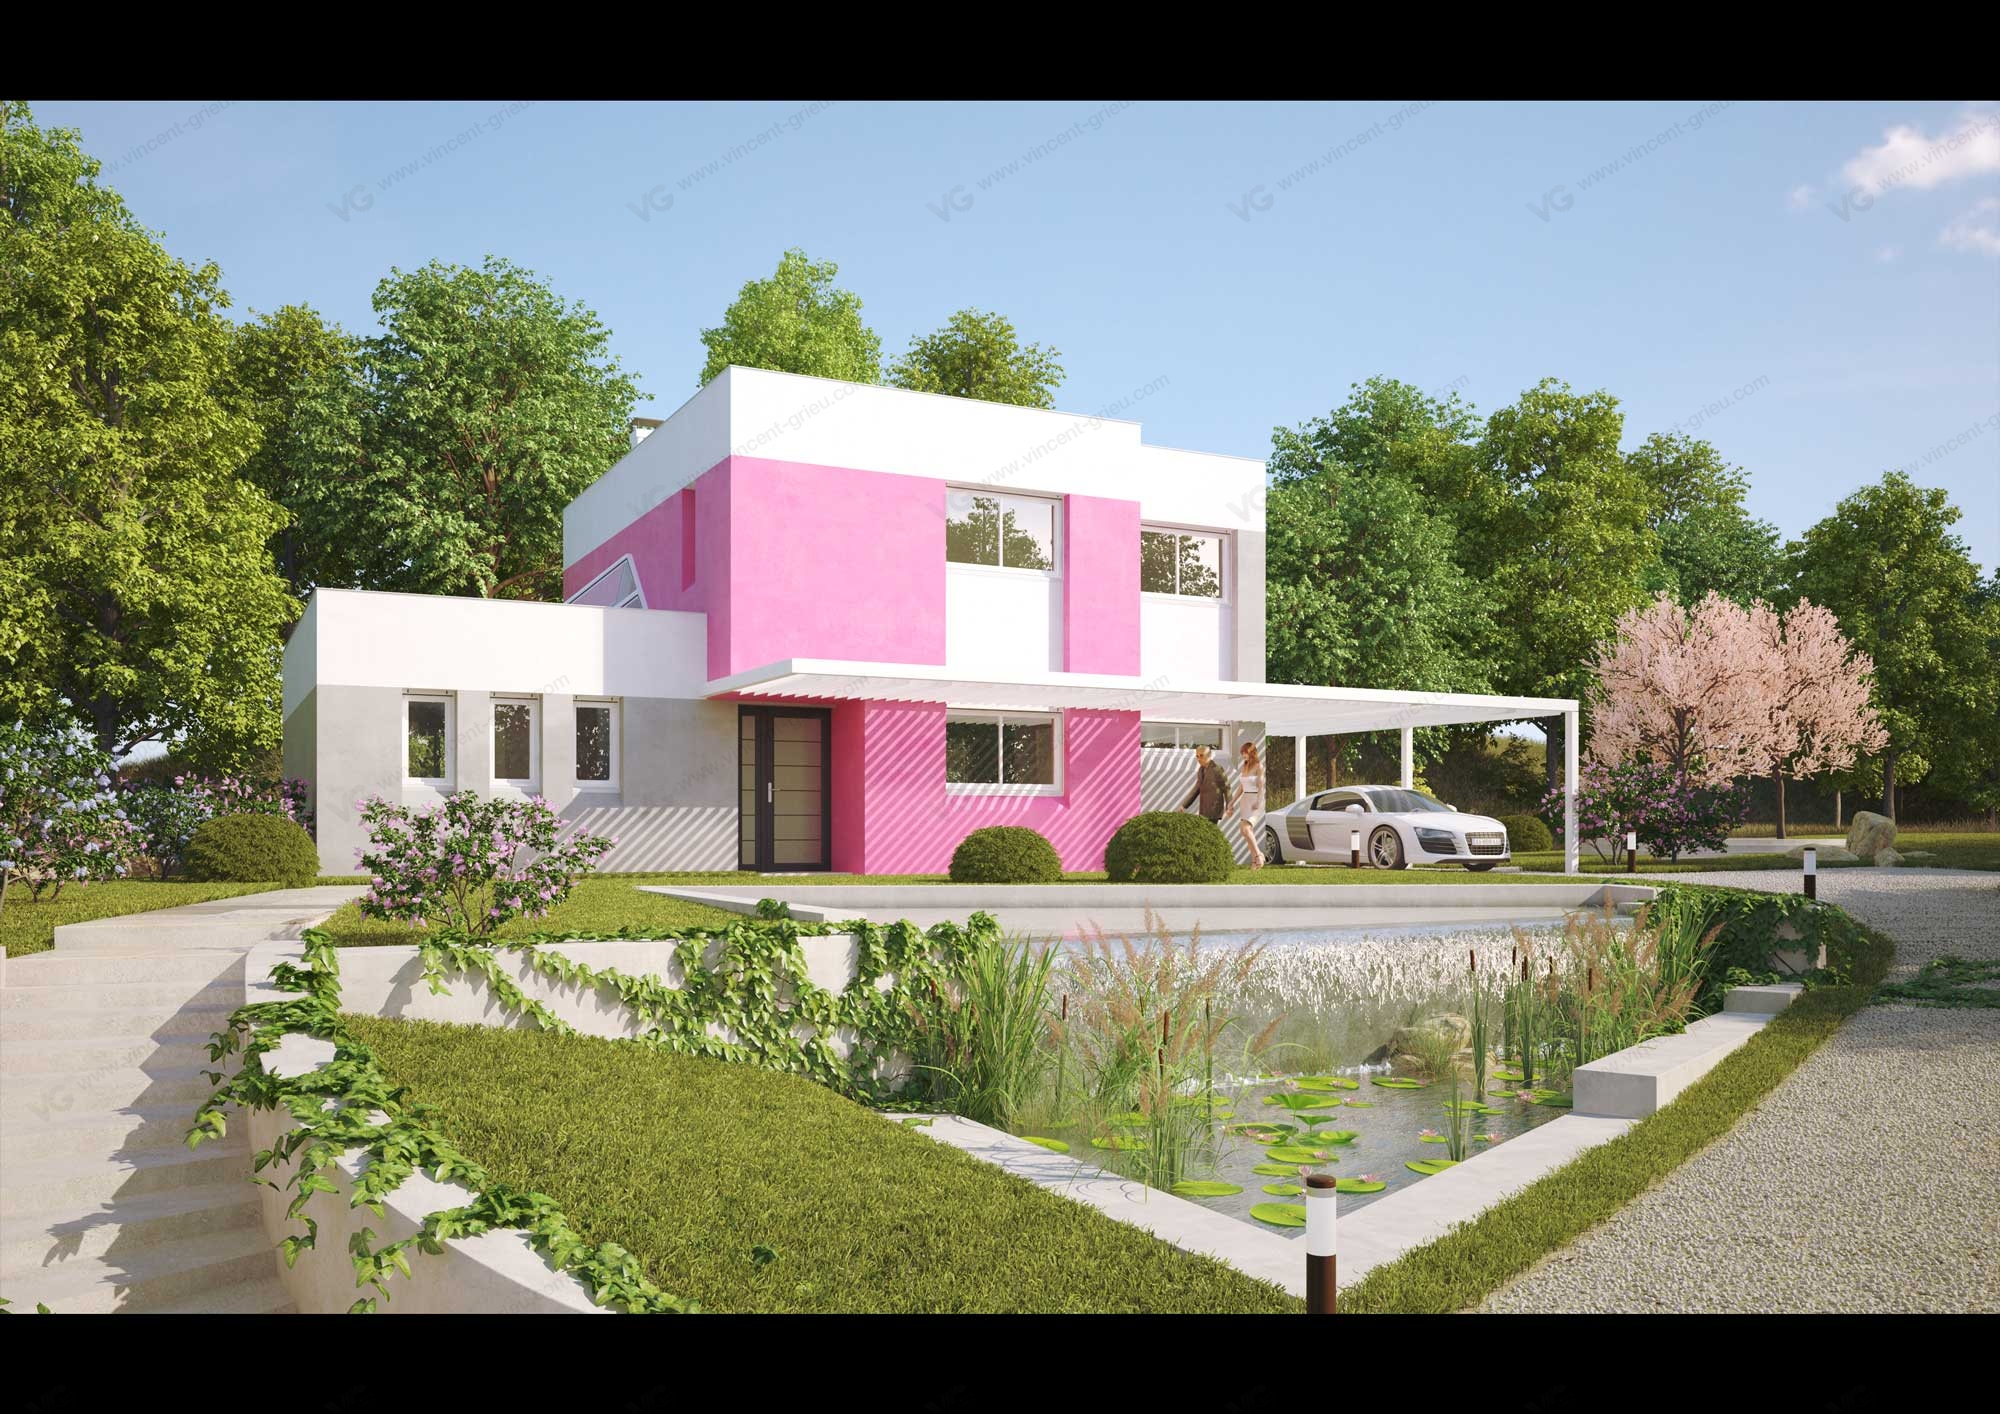 R alisation de perspective 3d pour une villa contemporaine for Villa contemporaine plan